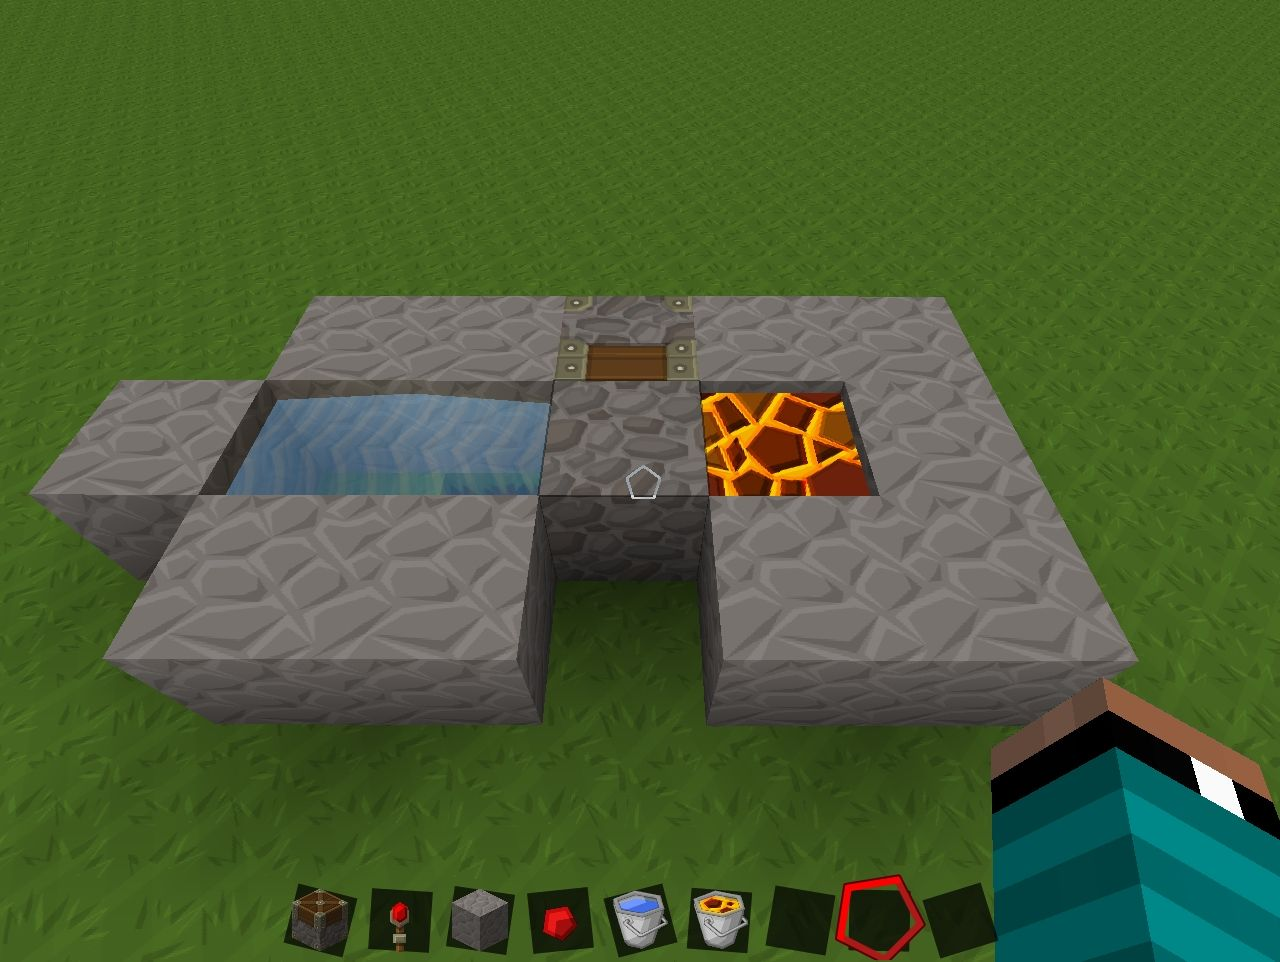 how to make obsidian generator in minecraft 1.11.2